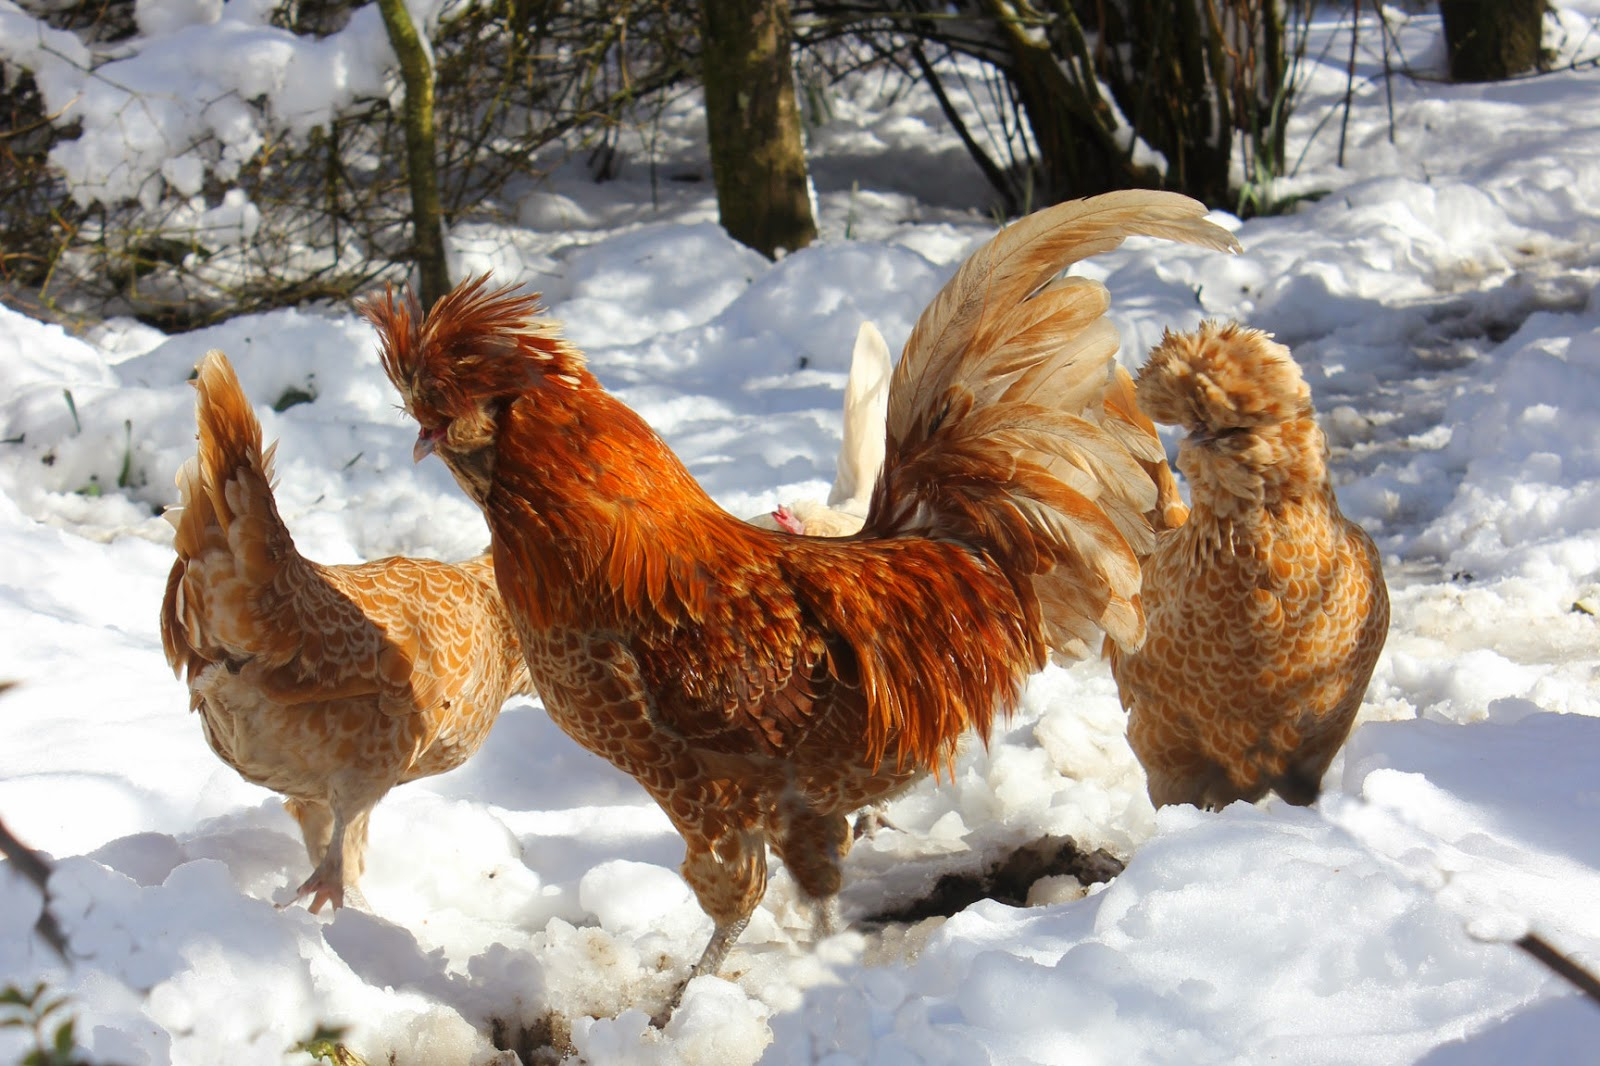 Polish chamois hens and rooster in the snow